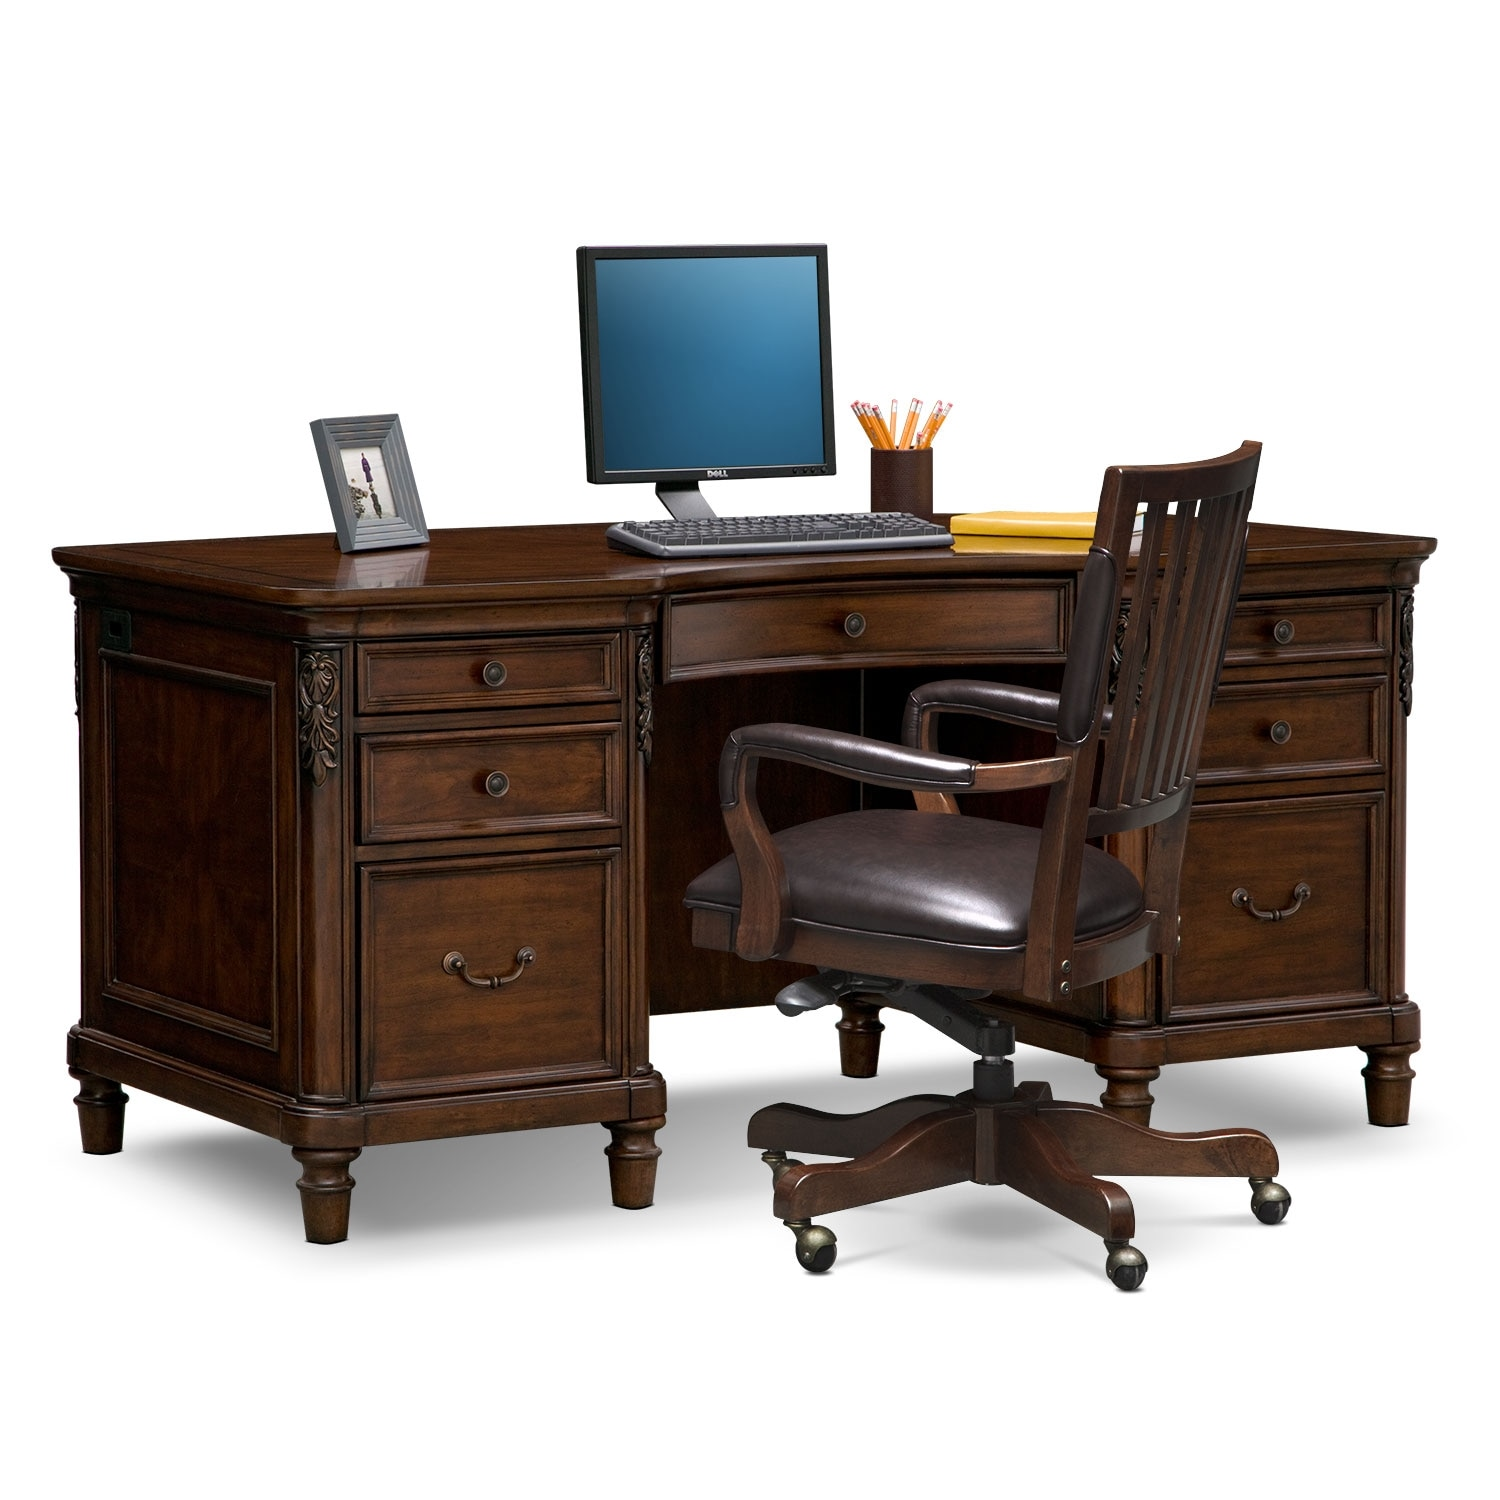 Home Office Desk Chair Ashland Executive Desk And Chair Set Cherry Value City